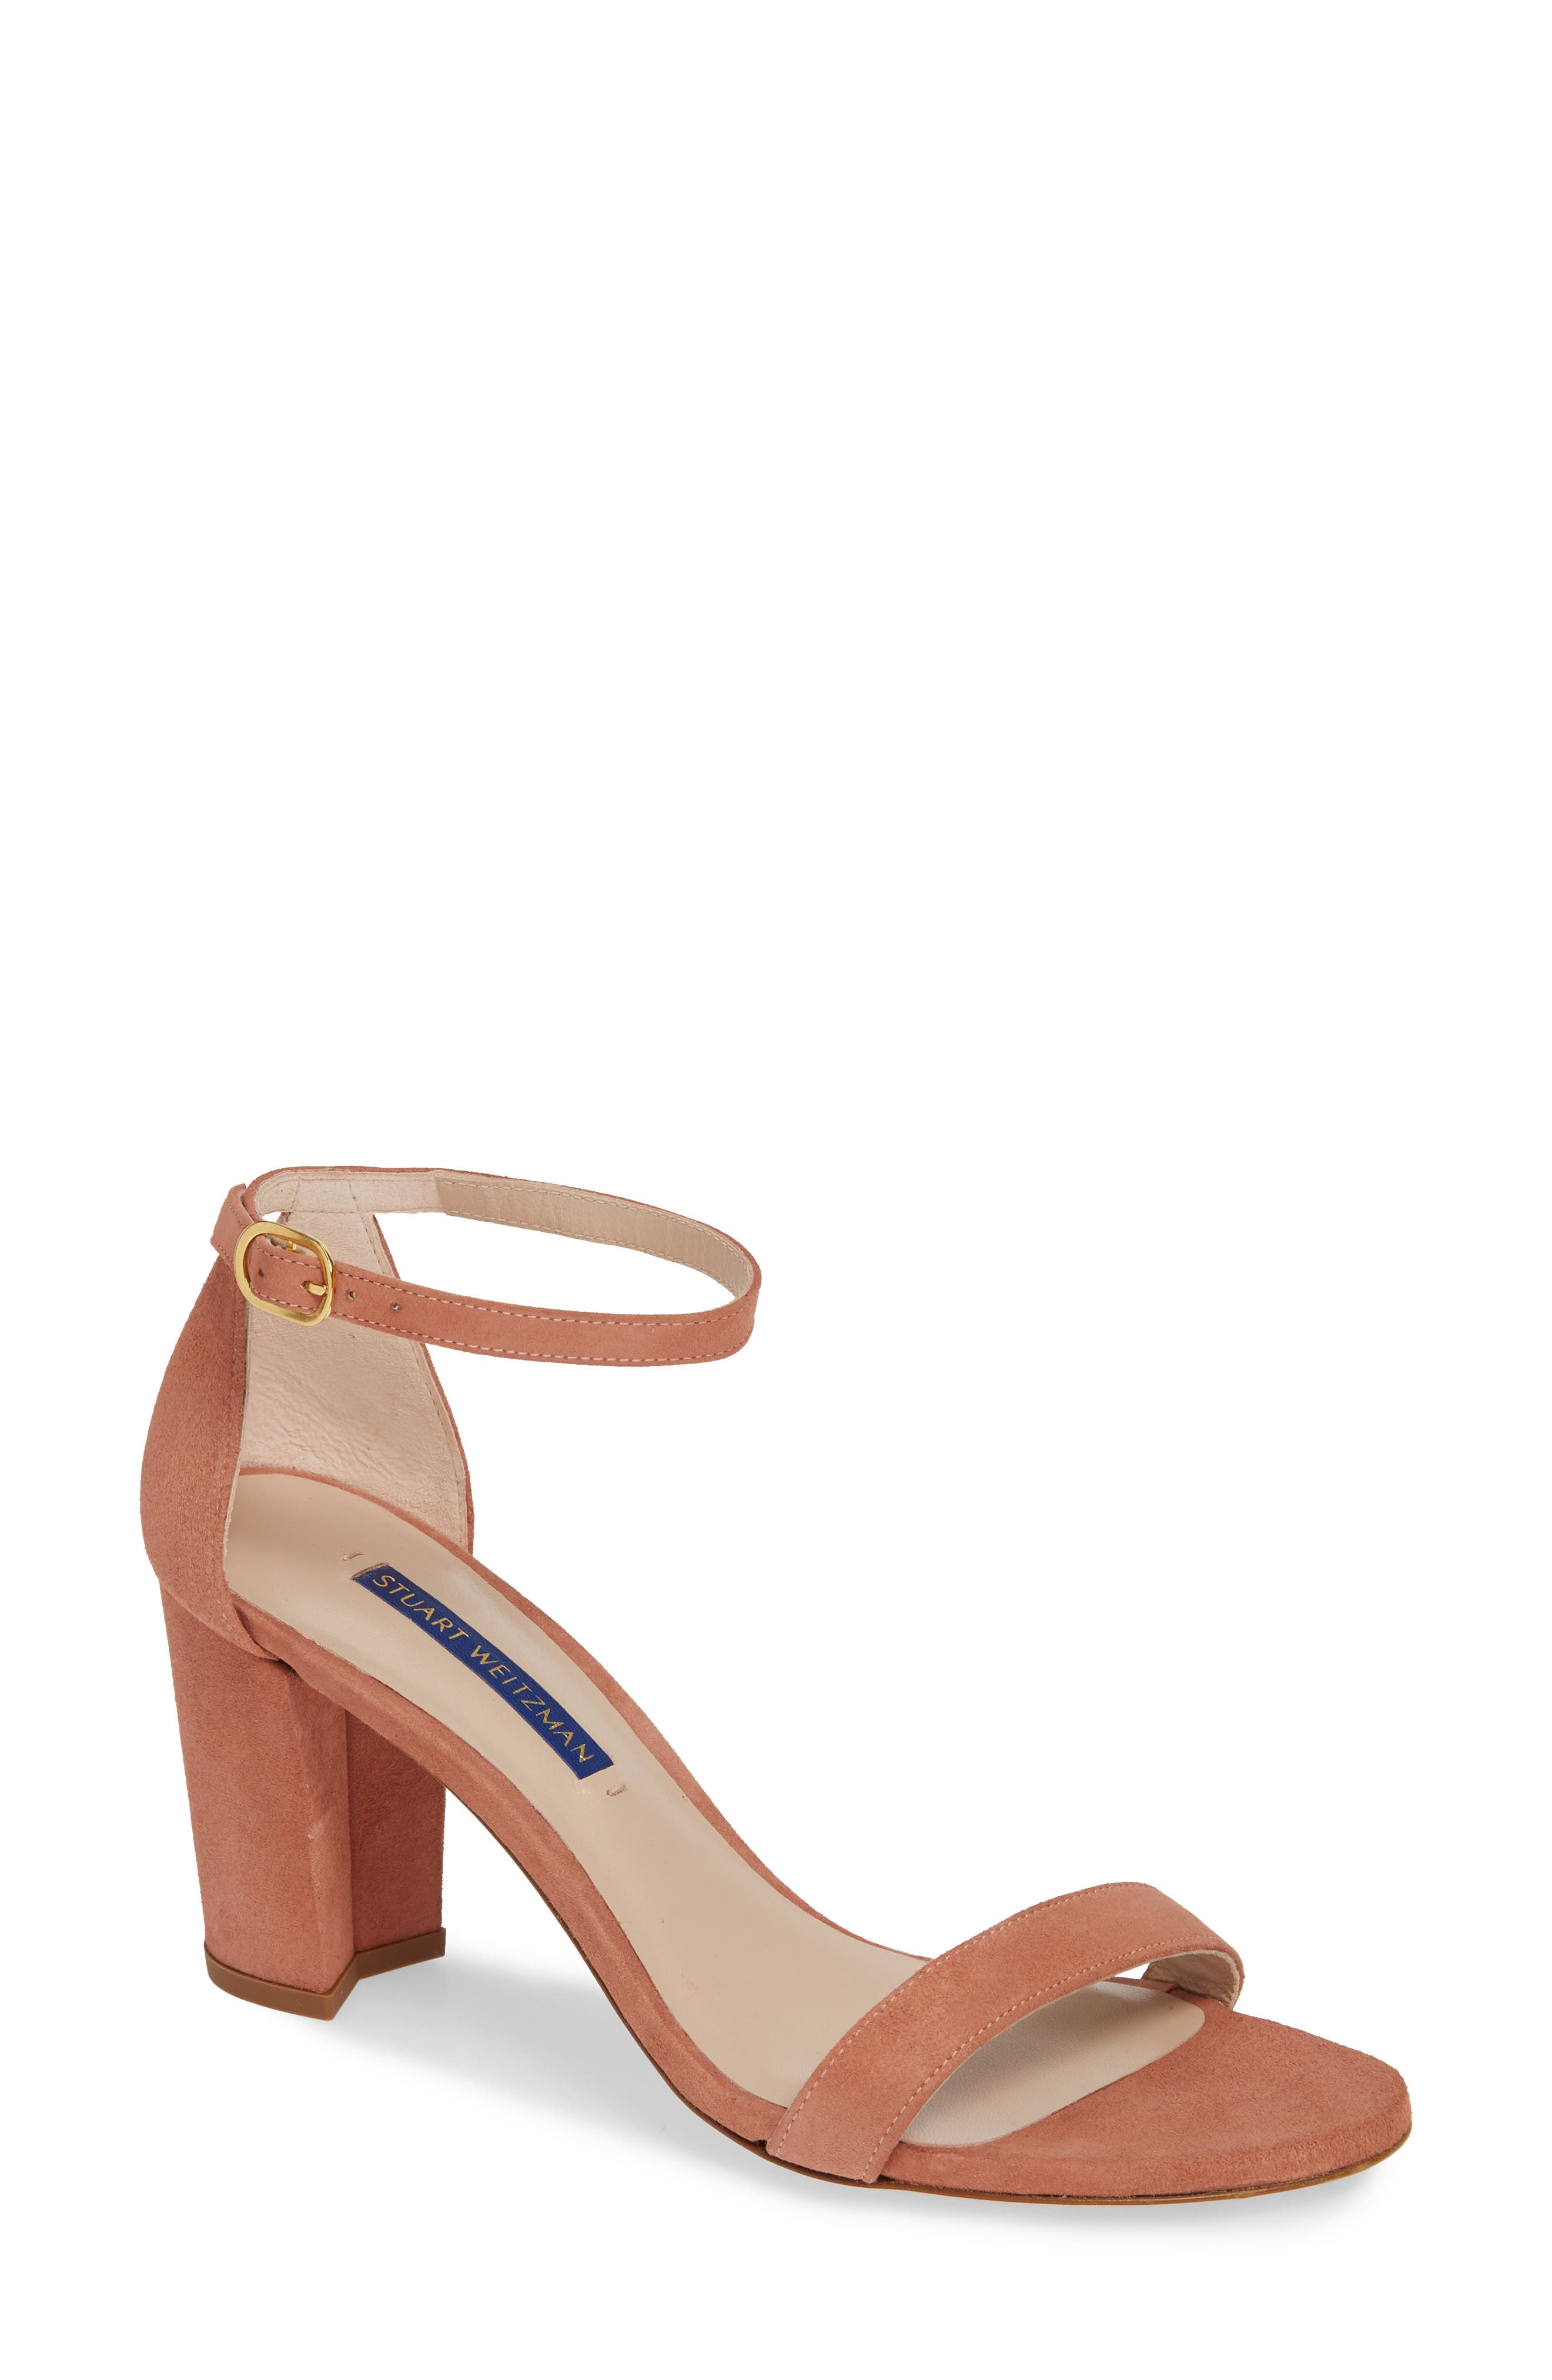 STUART WEITZMAN, NearlyNude Ankle Strap Sandal, Main thumbnail 1, color, DESERT ROSE SUEDE